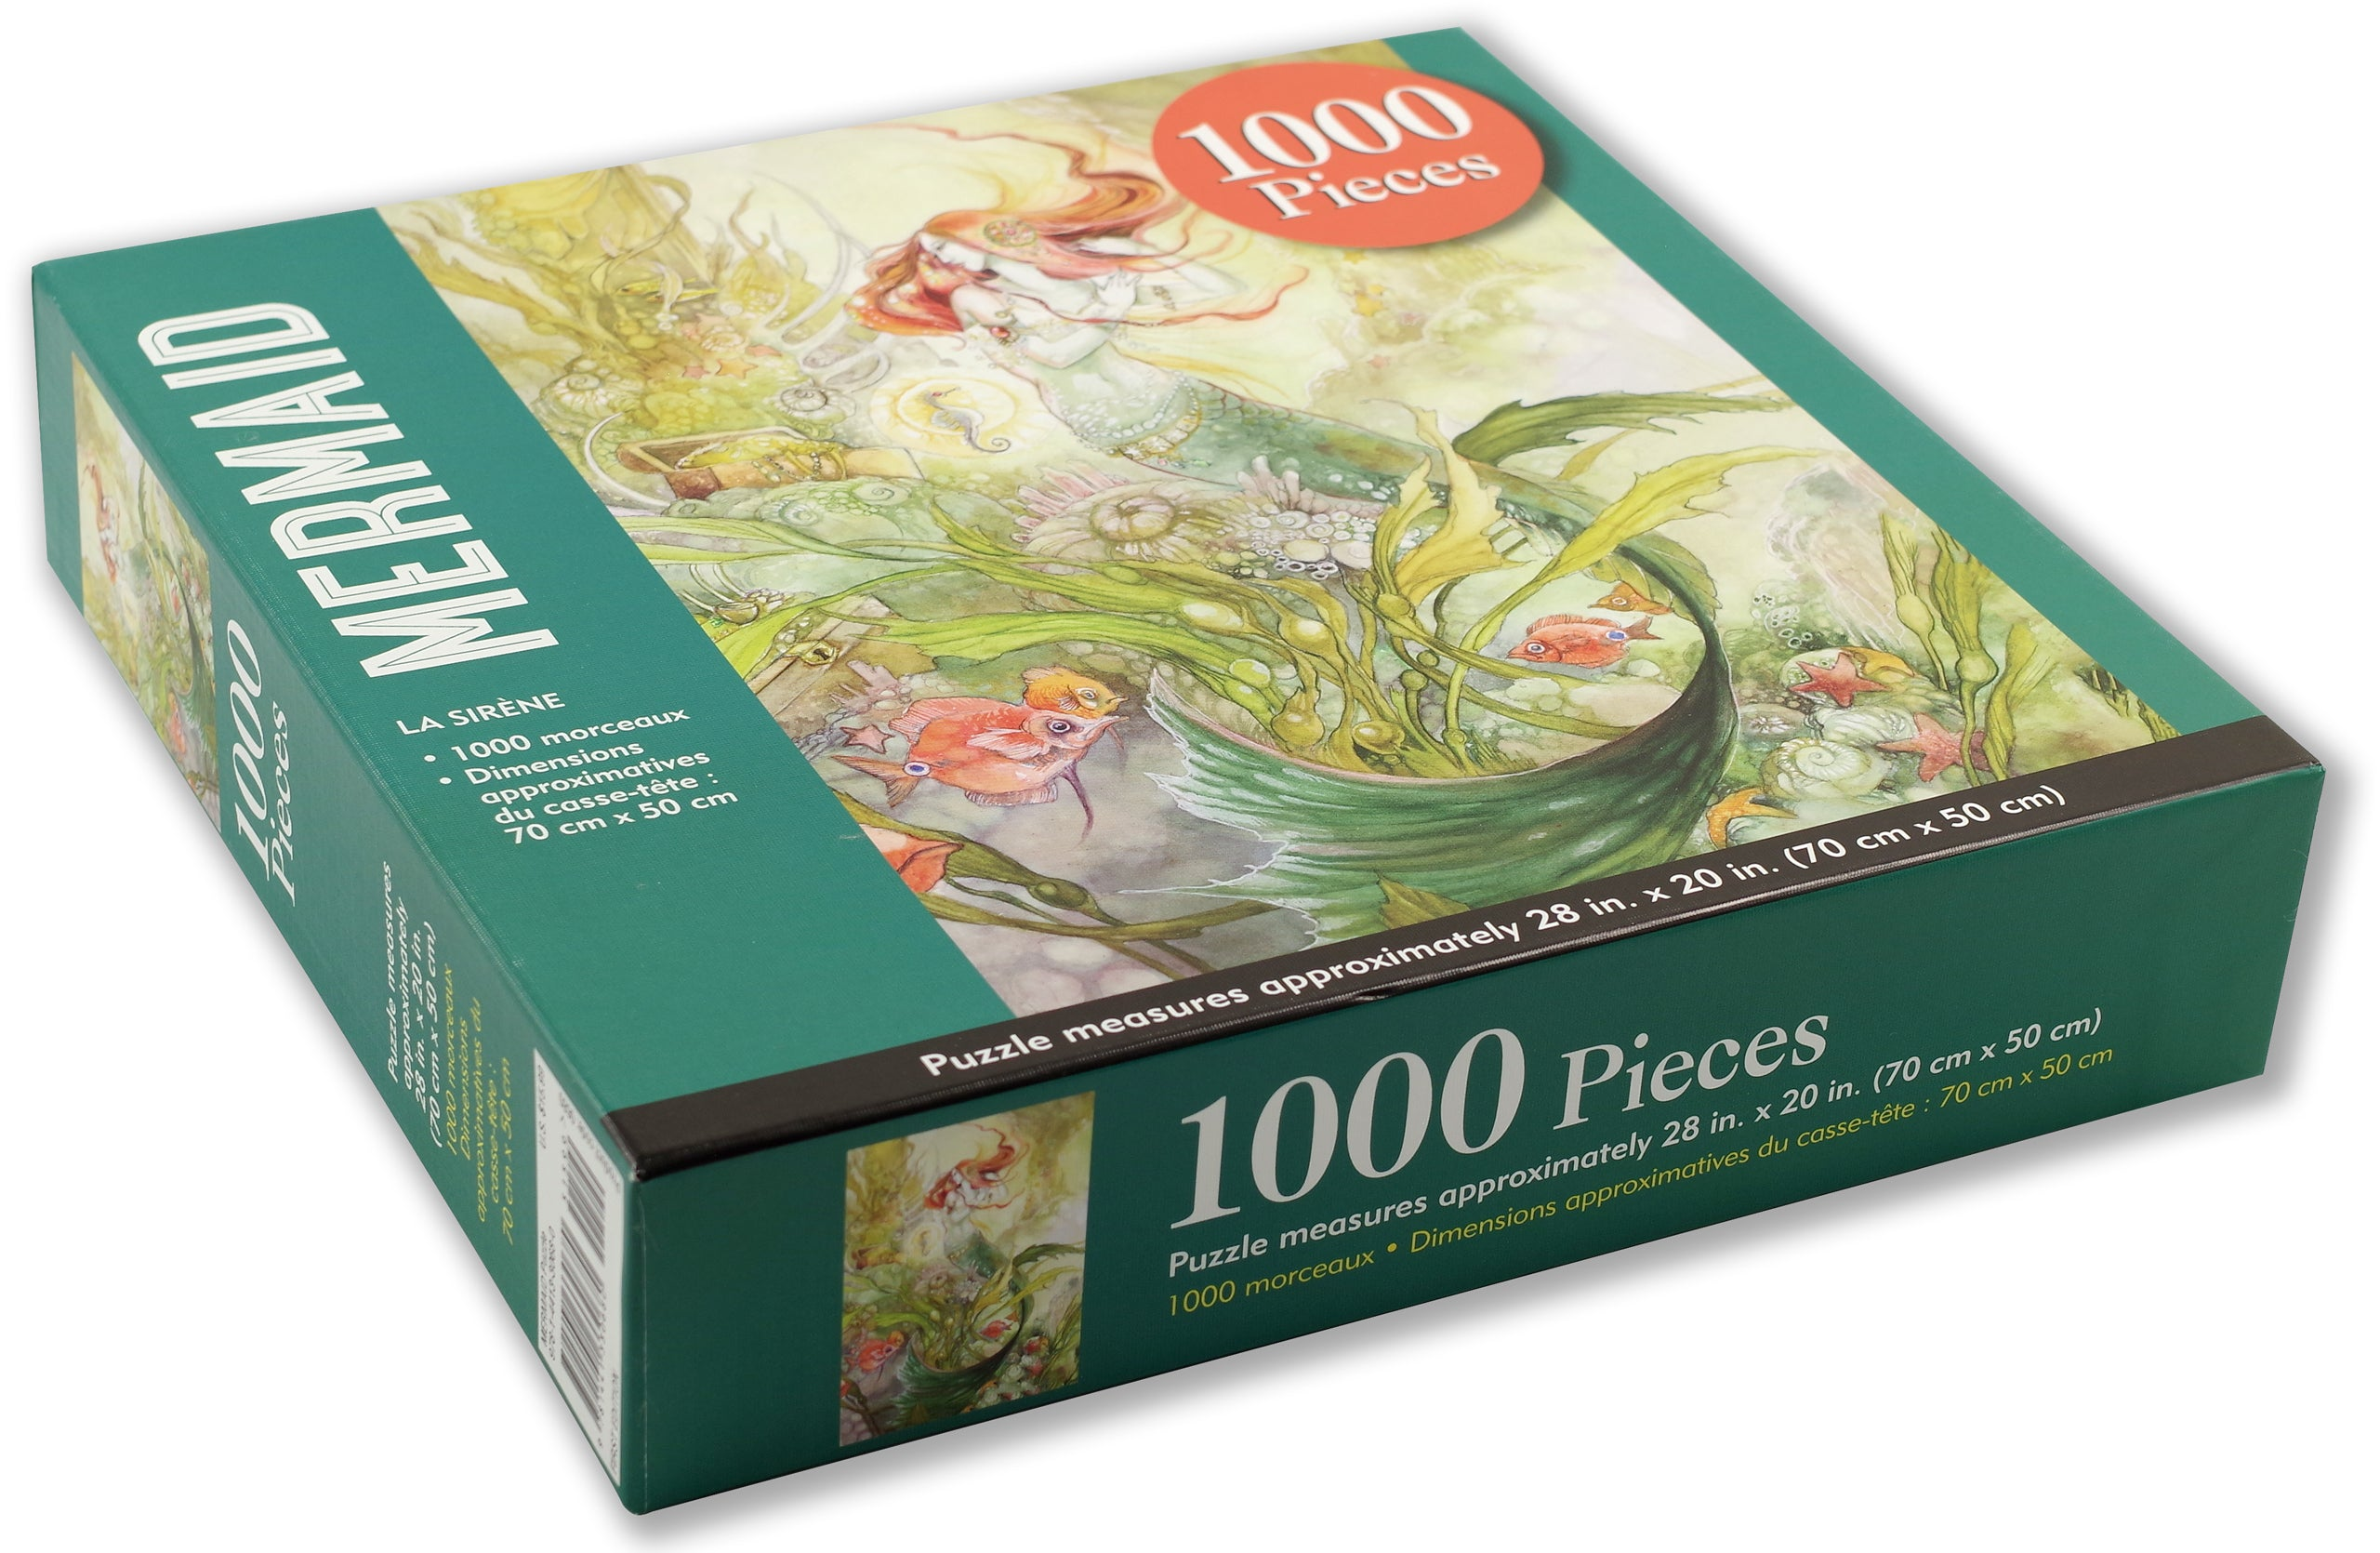 Mermaid 1000 Piece Puzzle